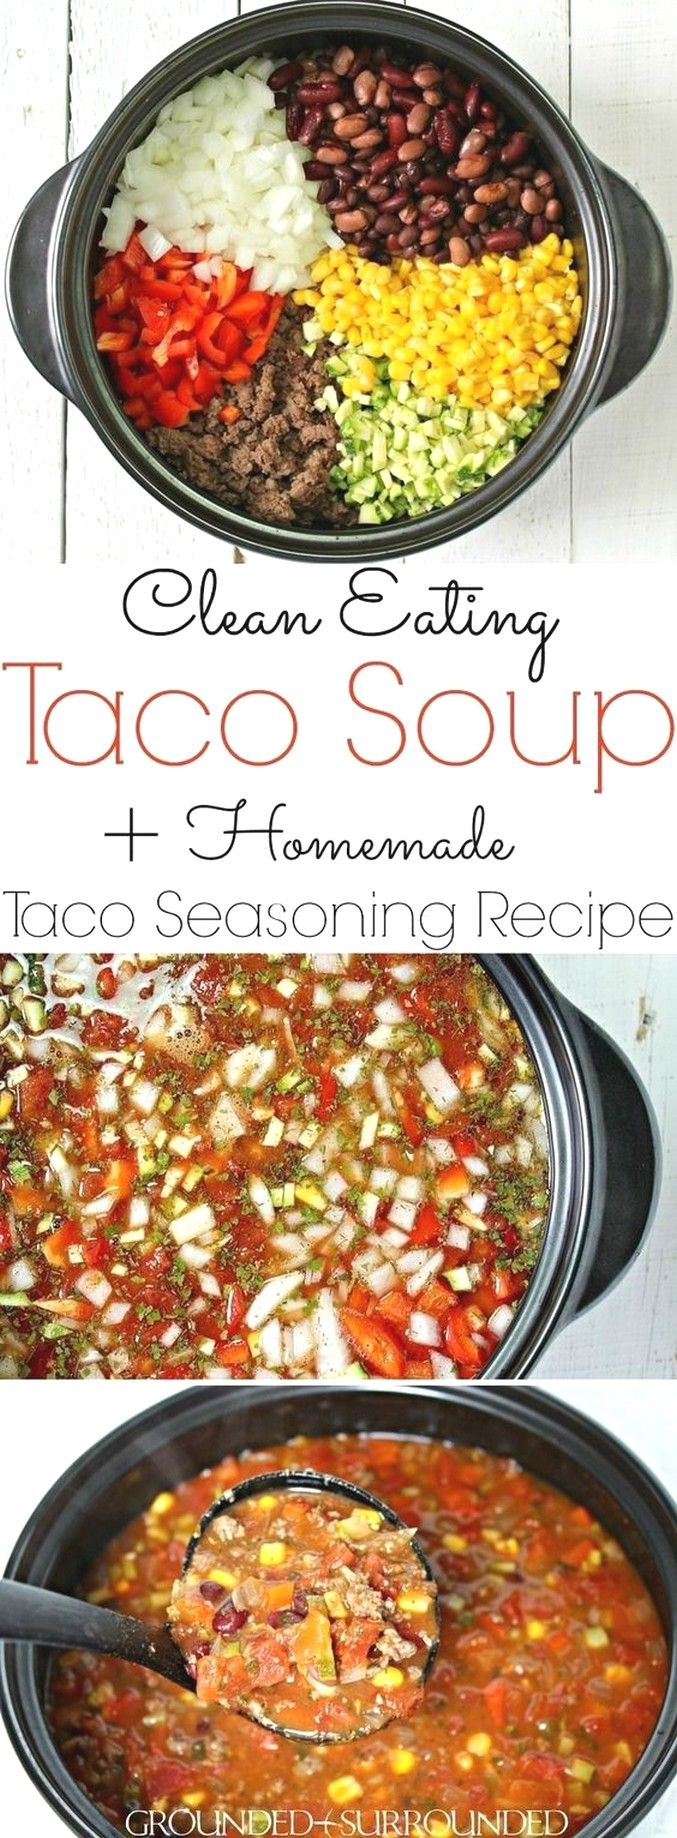 Taco Soup | Clean Eating Recipes #cleaneatingforbeginners